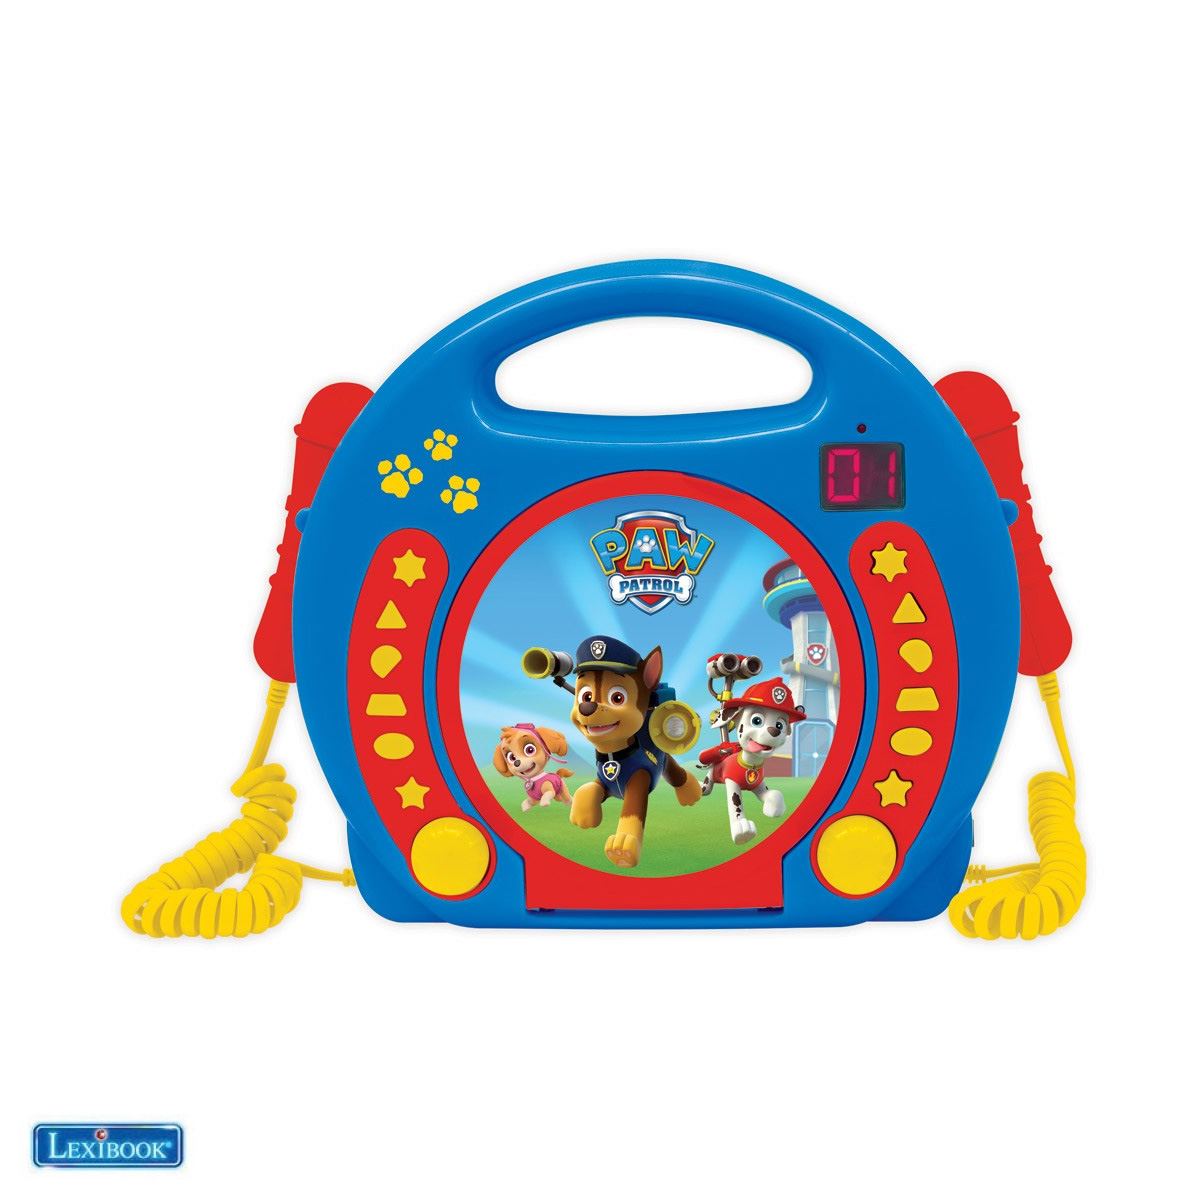 Lexibook - Paw Patrol Portable CD player with 2 Sing Along microphones (RCDK100PA)